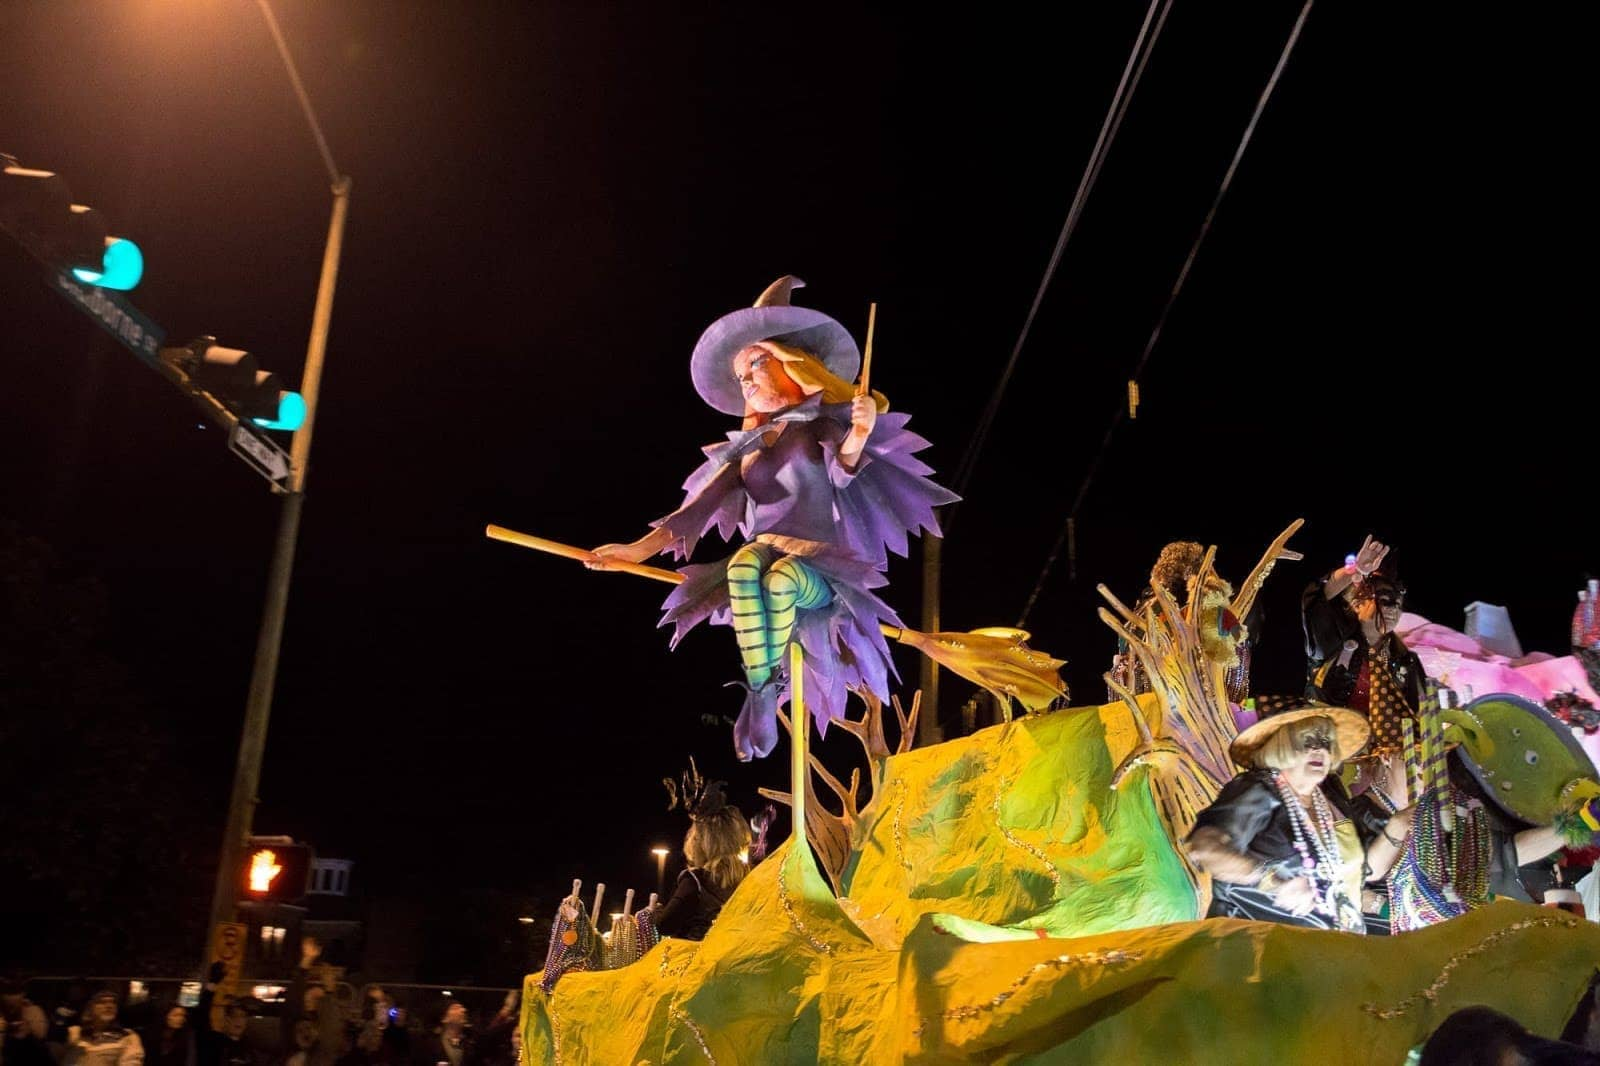 Mardi Gras Mobile by Laurence Norah